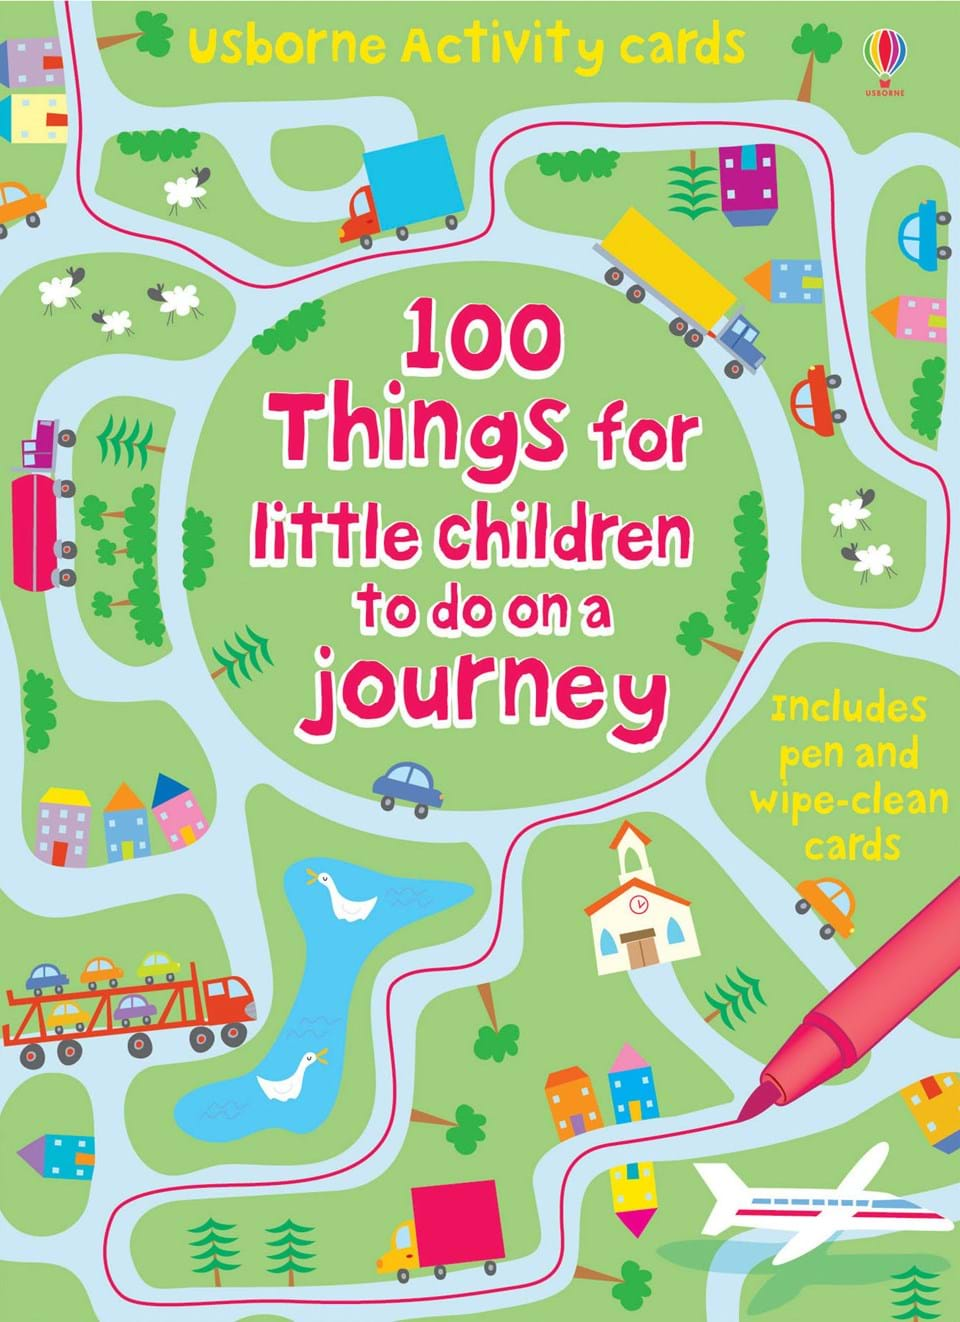 100-things-to-do-on-a-journey